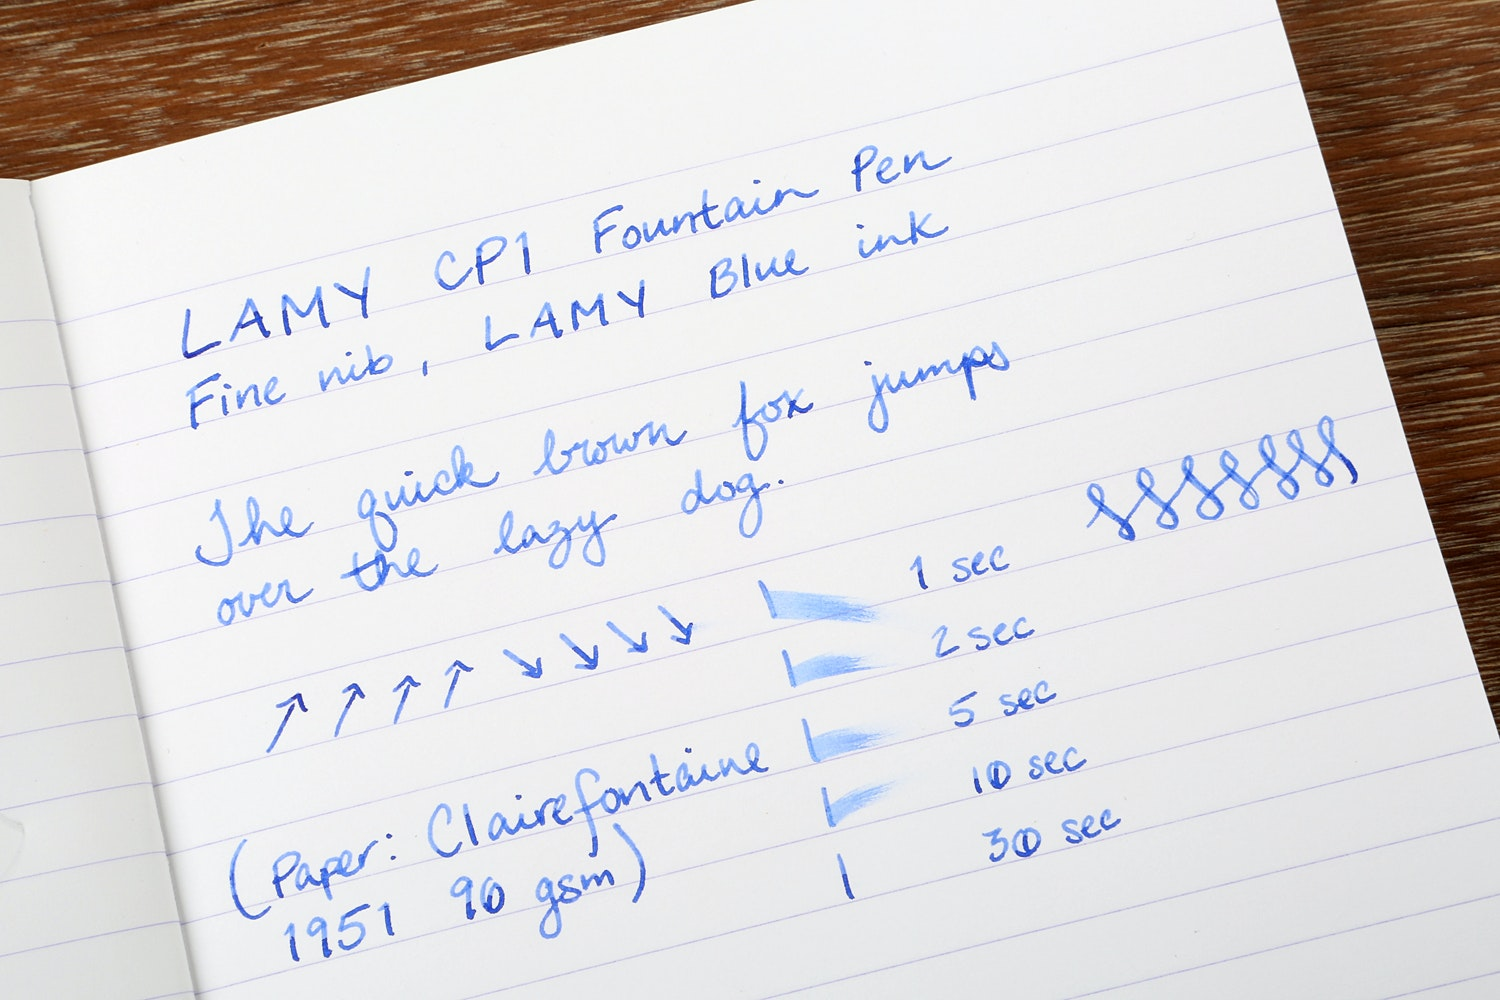 LAMY CP1 Fountain Pen